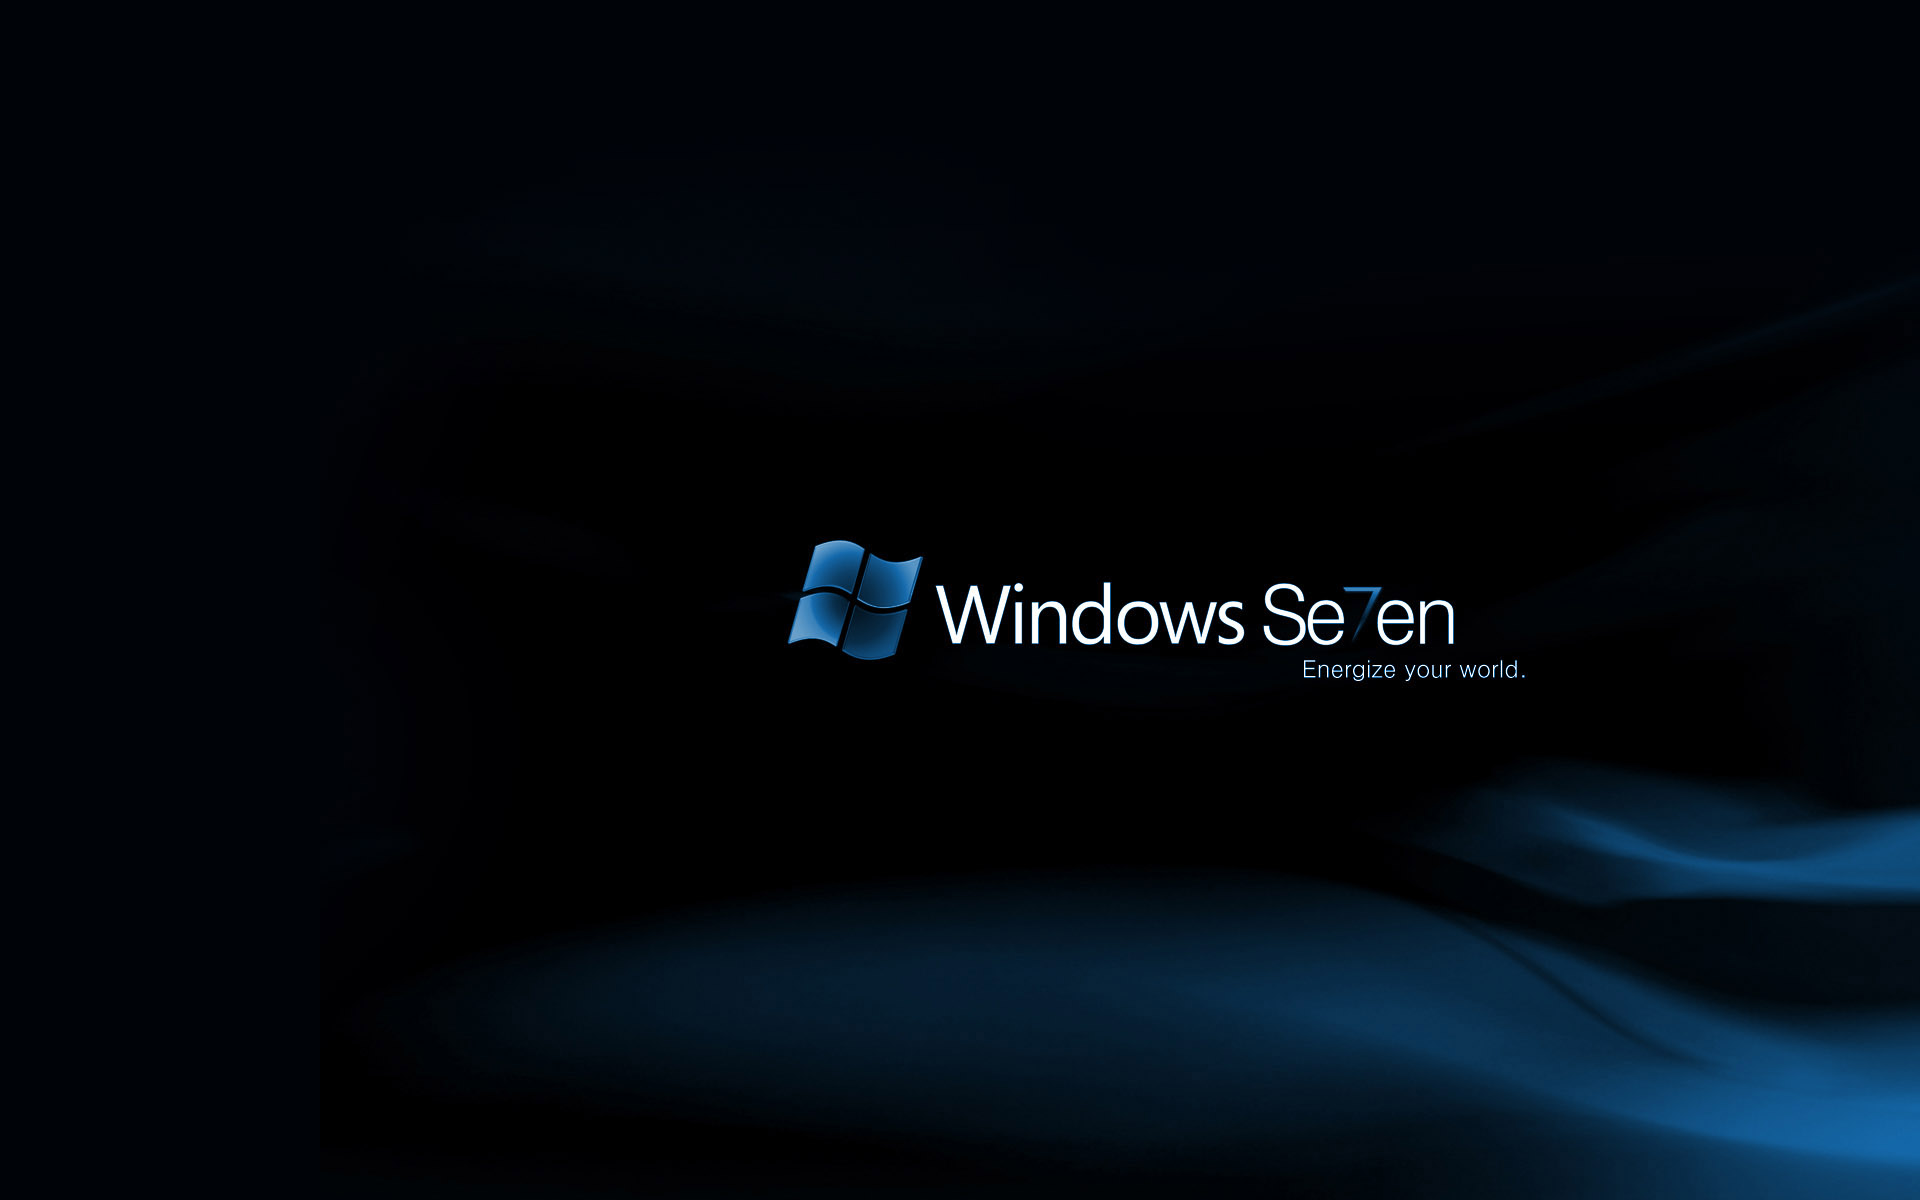 Windows Desktop Wallpaper 13172